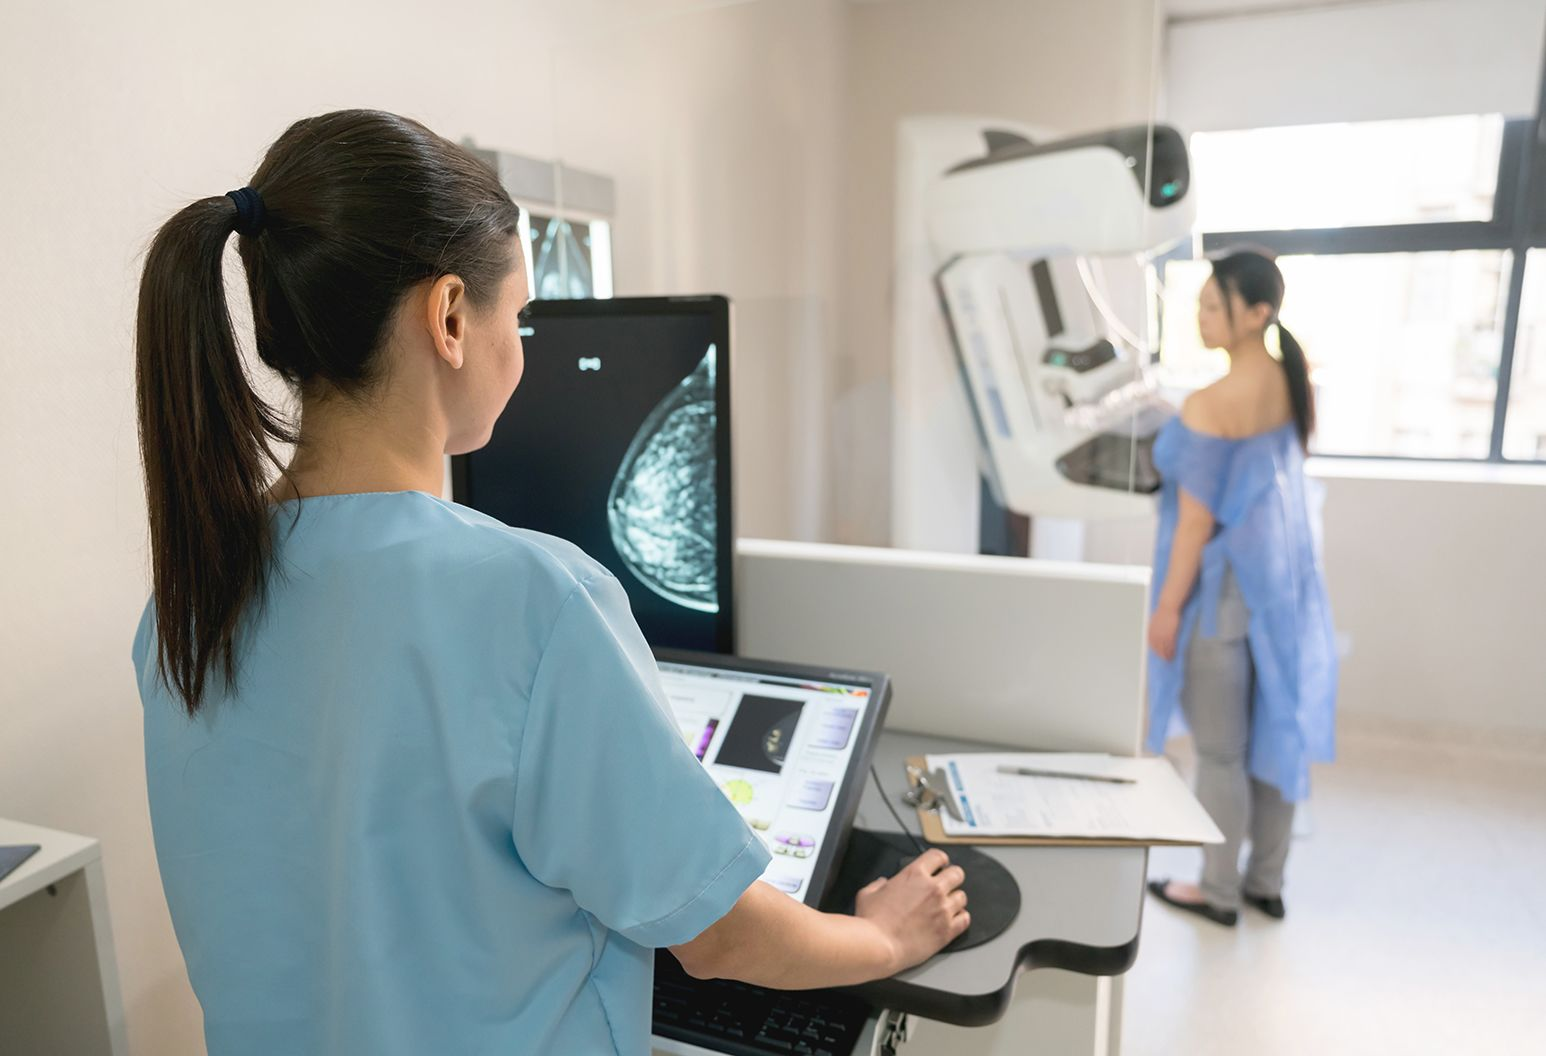 nrecognizable nurse taking a mammogram exam to an adult patient at the hospital